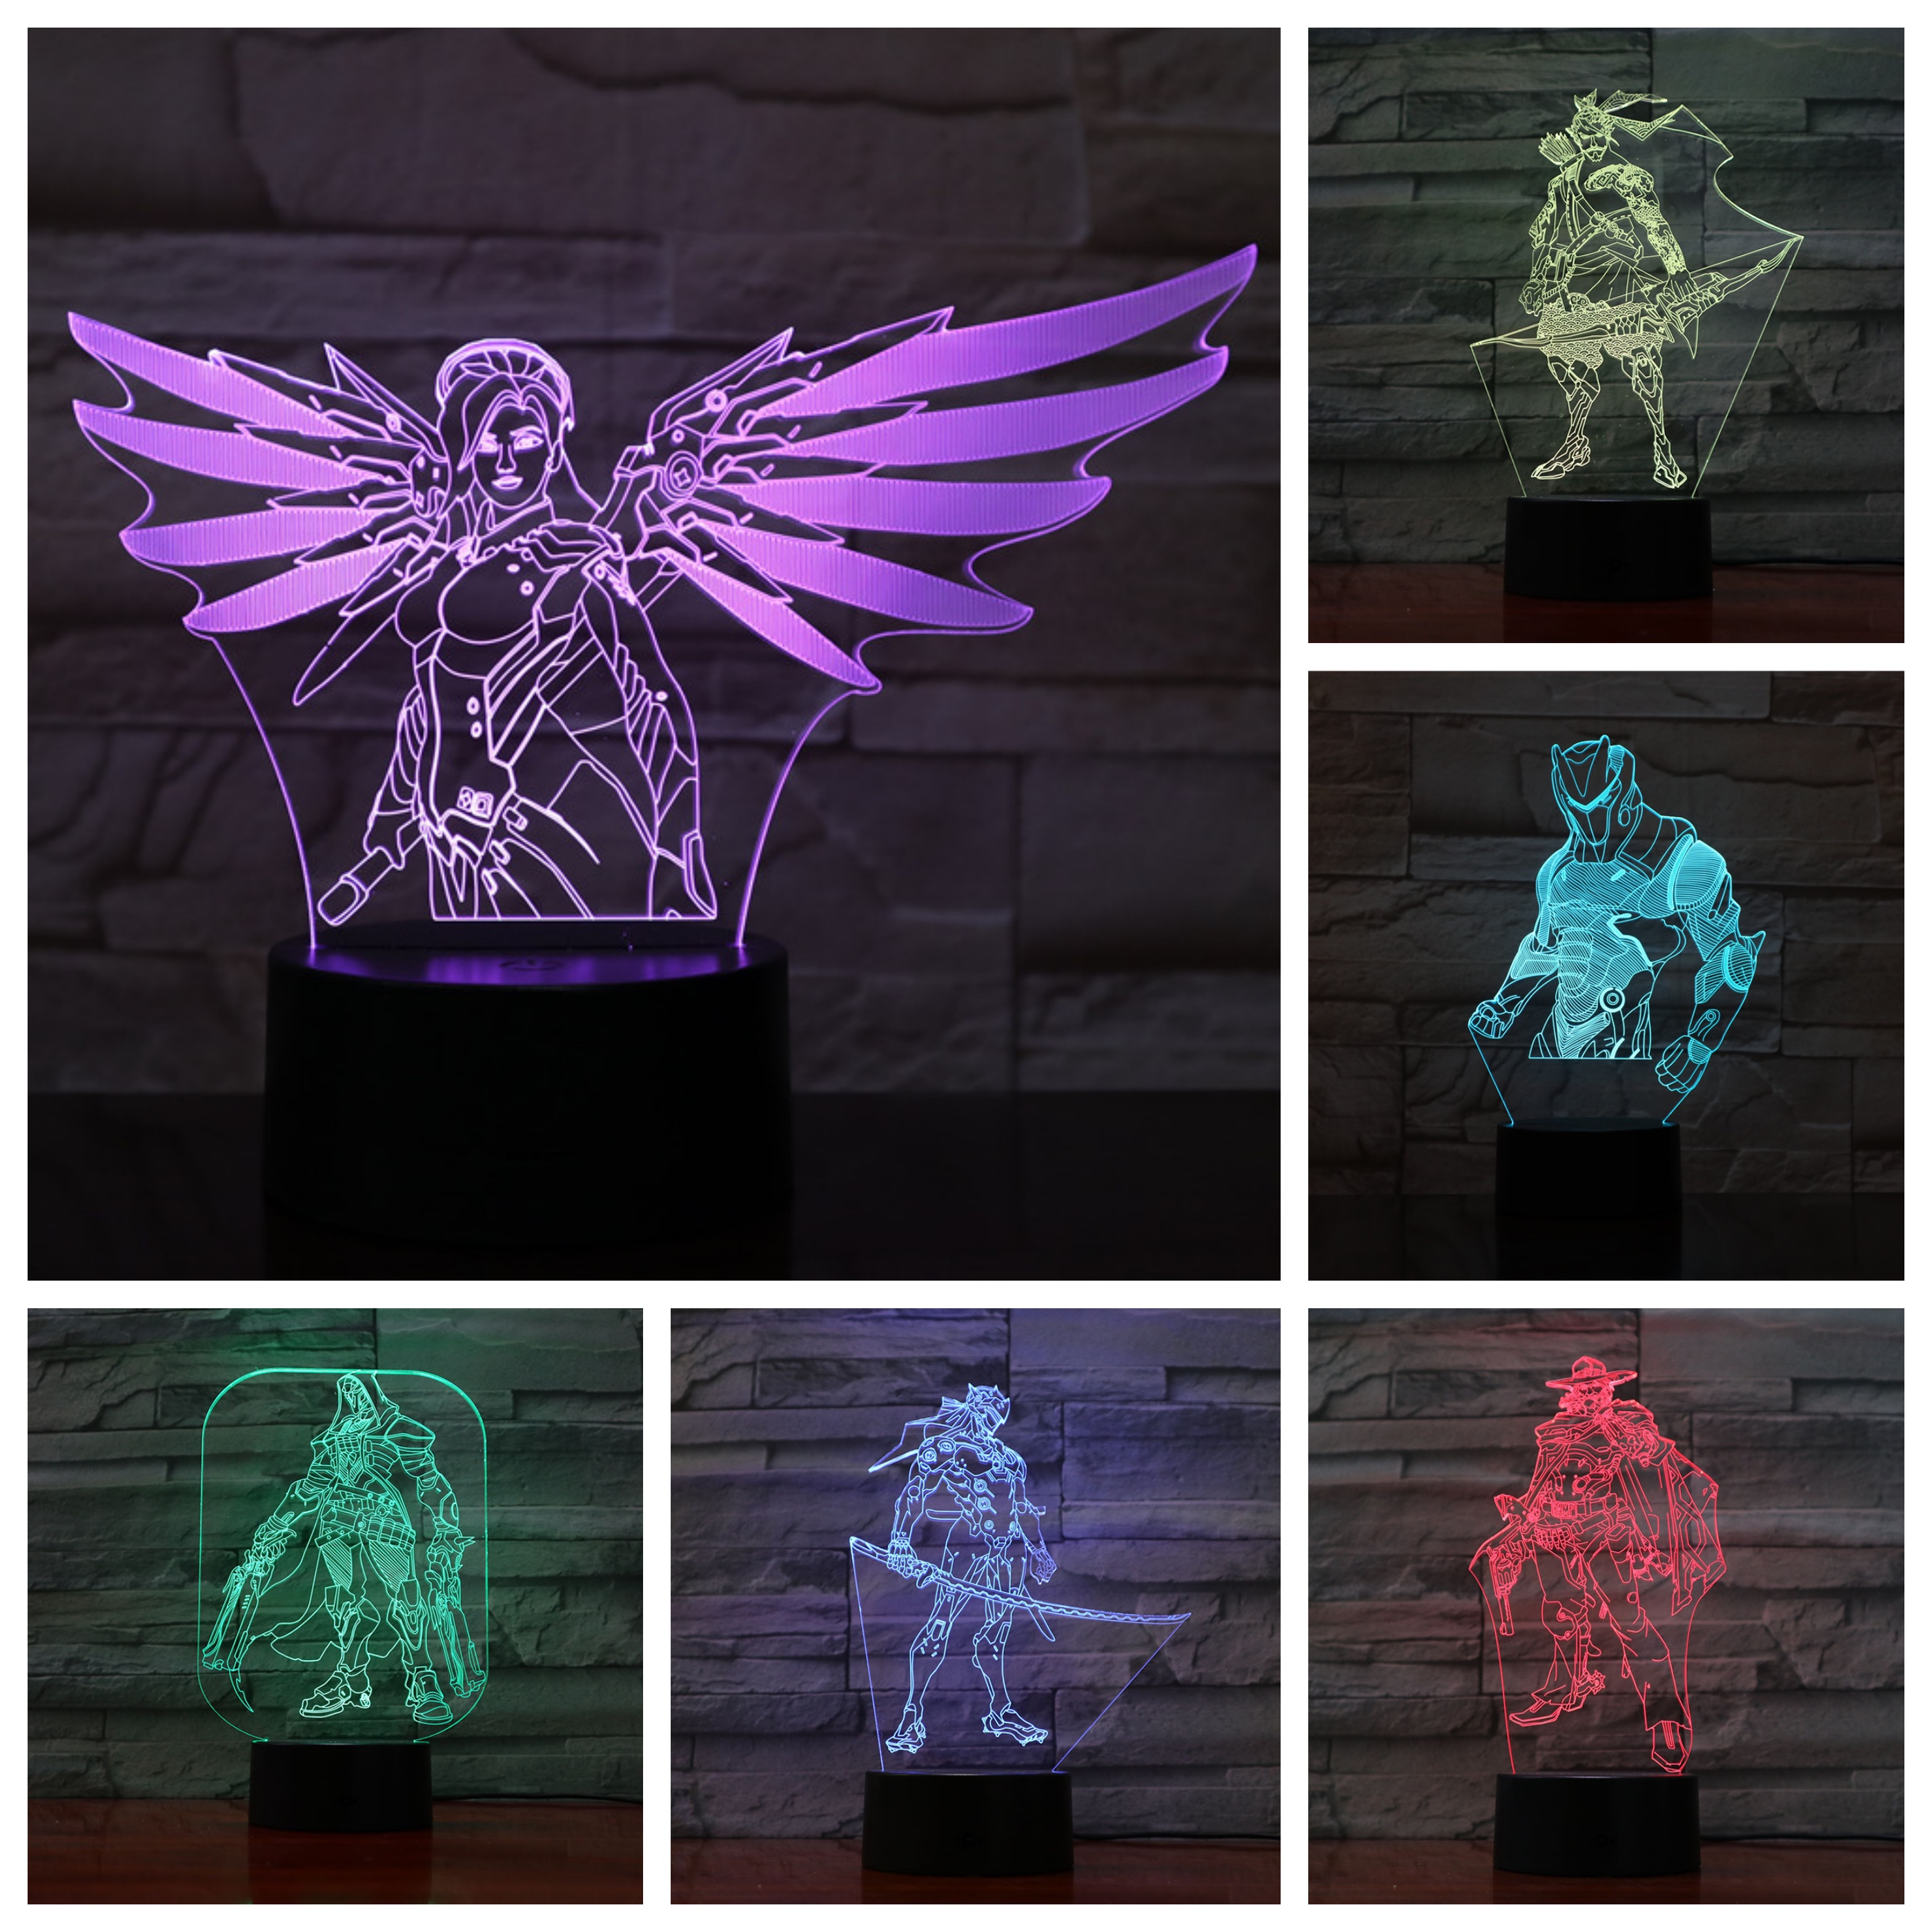 Game Overwatch 3D Lamp Table Bedroom Action Figure Decorative Lamp 7 Color Changing Dropshipping LED Night Light Home DecorGame Overwatch 3D Lamp Table Bedroom Action Figure Decorative Lamp 7 Color Changing Dropshipping LED Night Light Home Decor